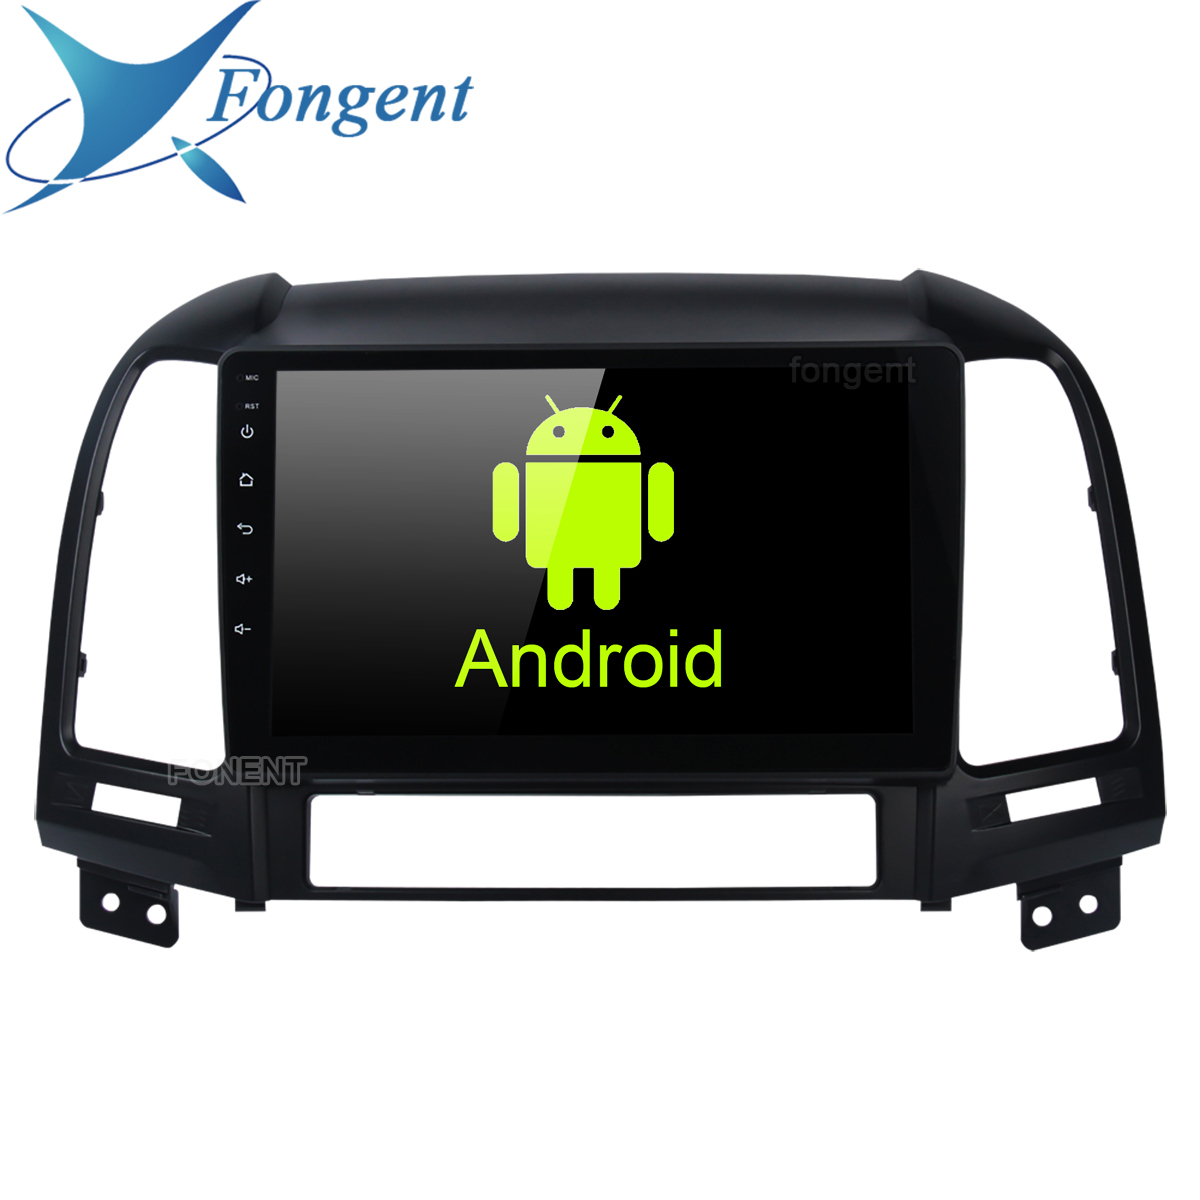 Car Radio Multimedia 2 din android Head Unit Video Player Navigation <font><b>GPS</b></font> For <font><b>Hyundai</b></font> <font><b>Santa</b></font> <font><b>Fe</b></font> 2006 2007 2008 2009 2010 2011 2012 image